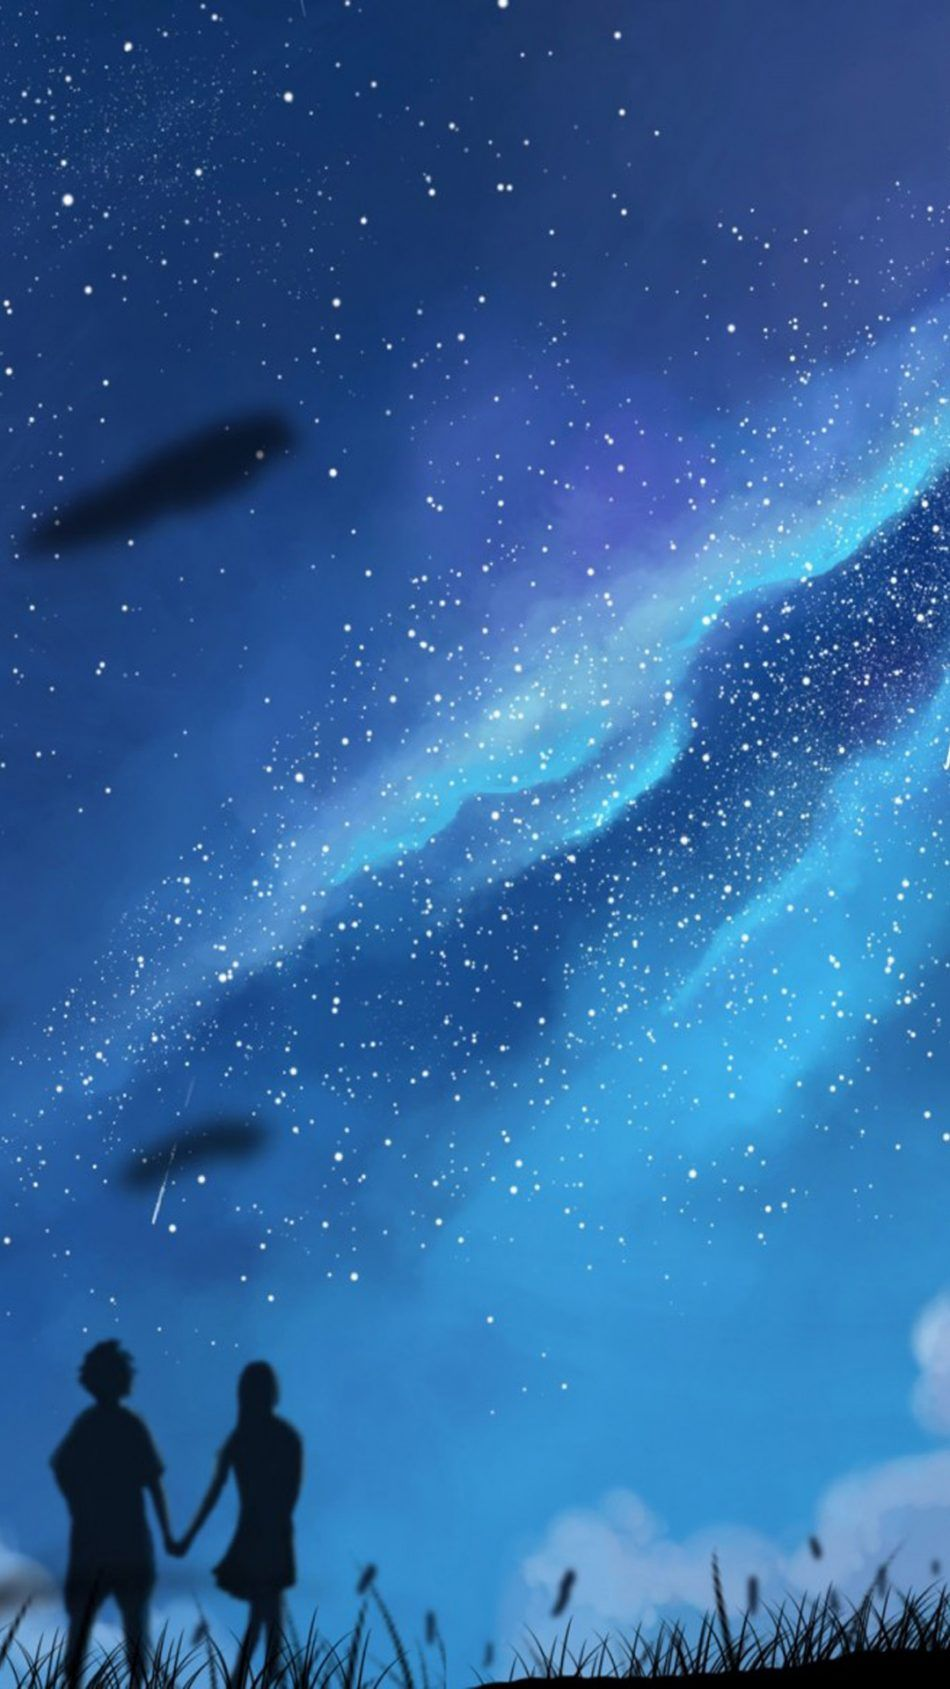 couple starry sky night artwork couple wallpapers pinterest